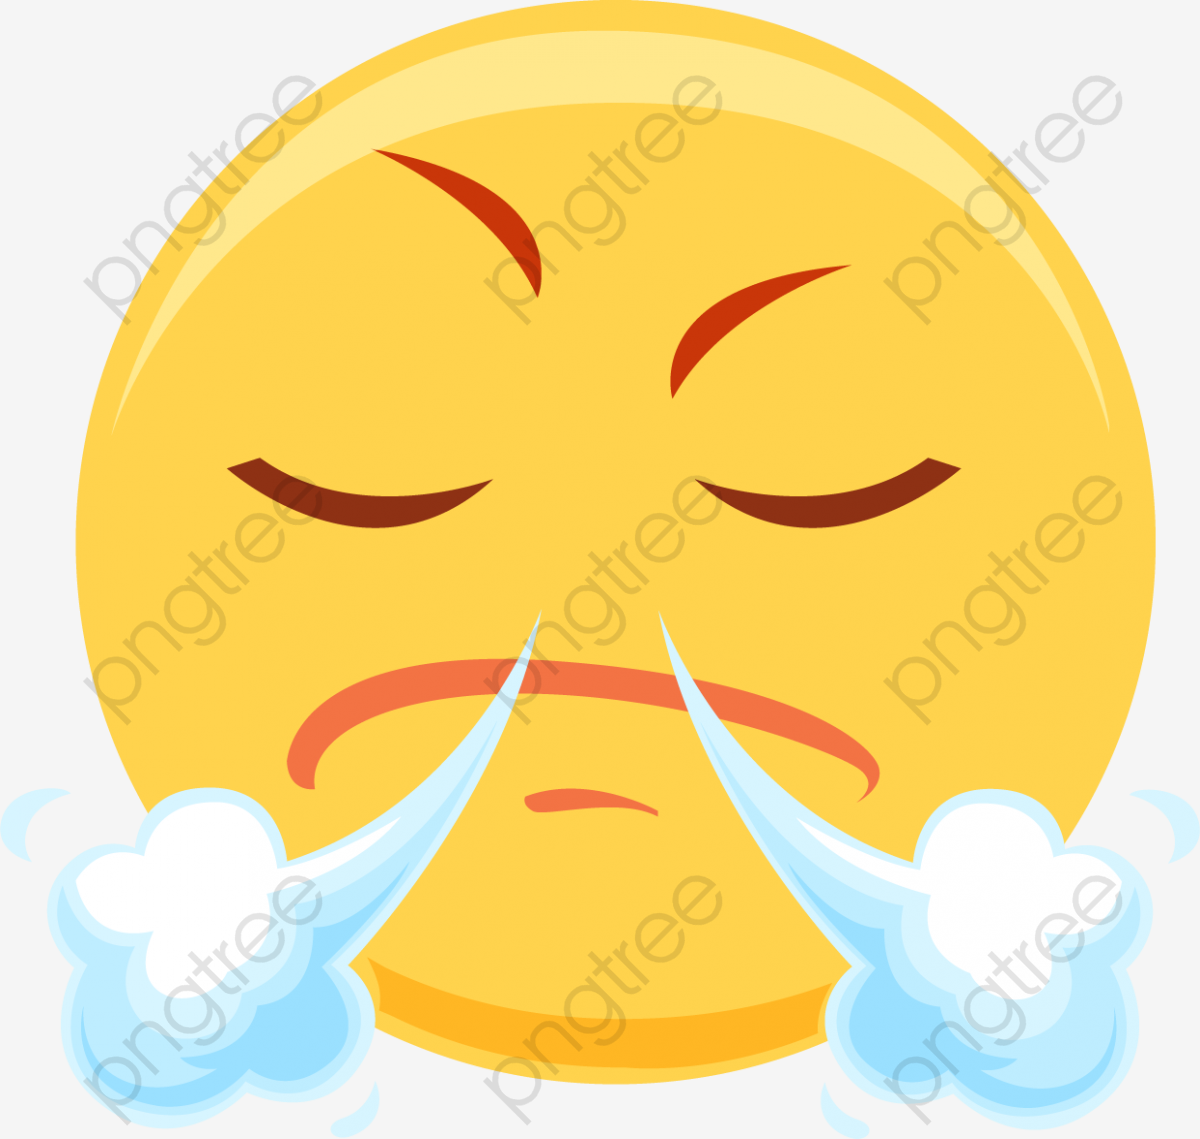 Angry Expression Cartoon Emoji Emoticon Png And Vector With